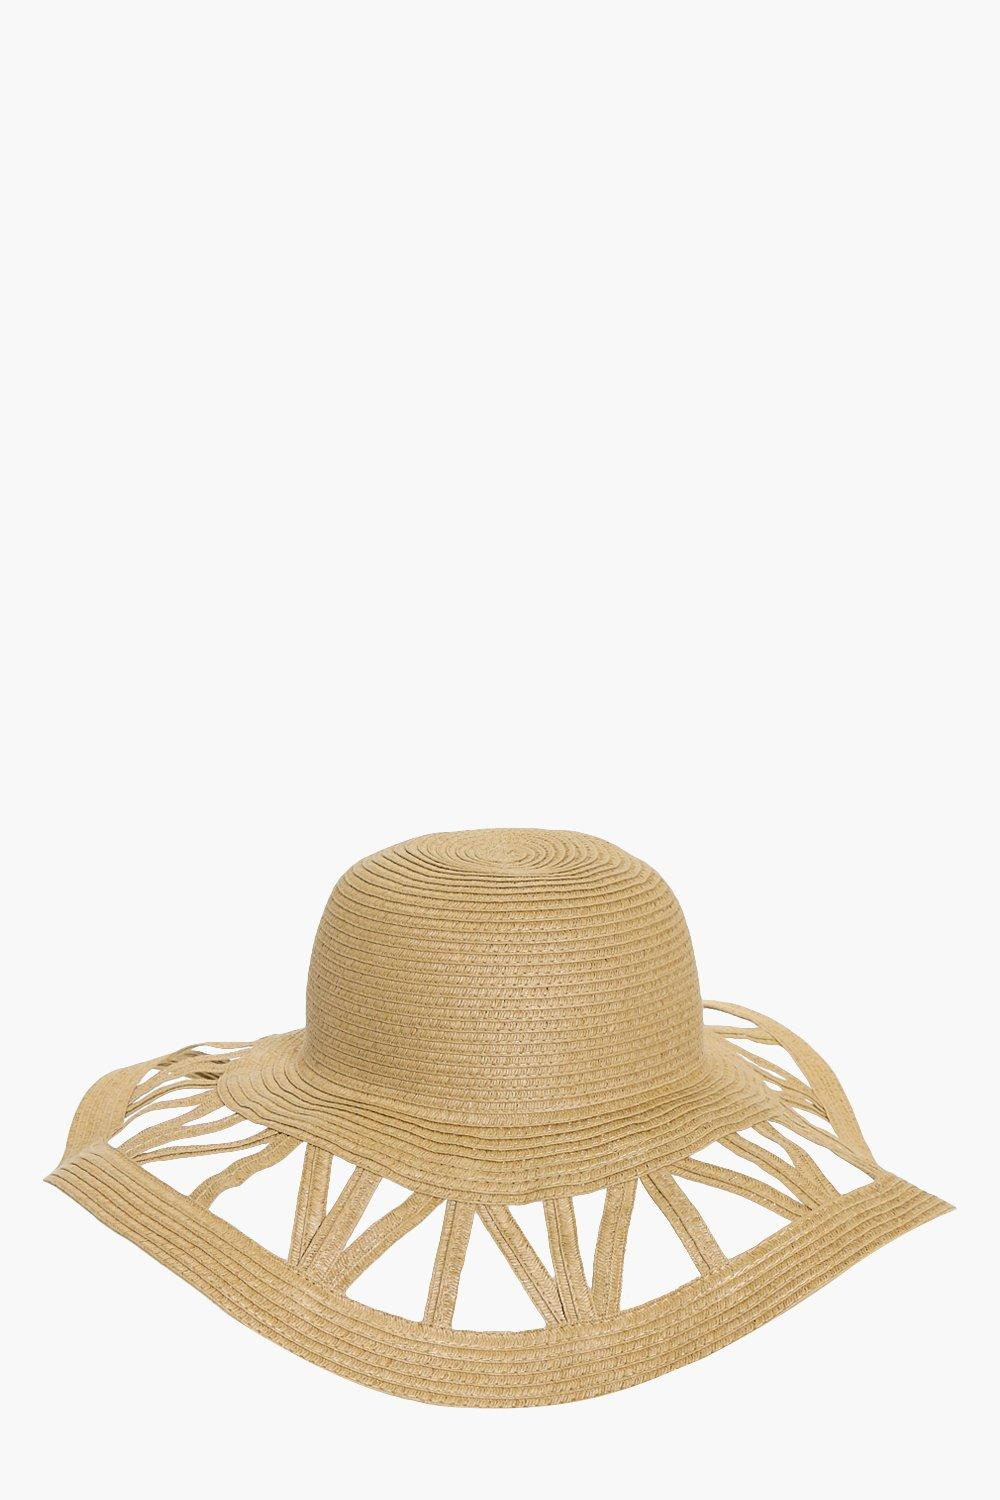 Cutout Floppy Hat - natural - Diana Cutout Floppy